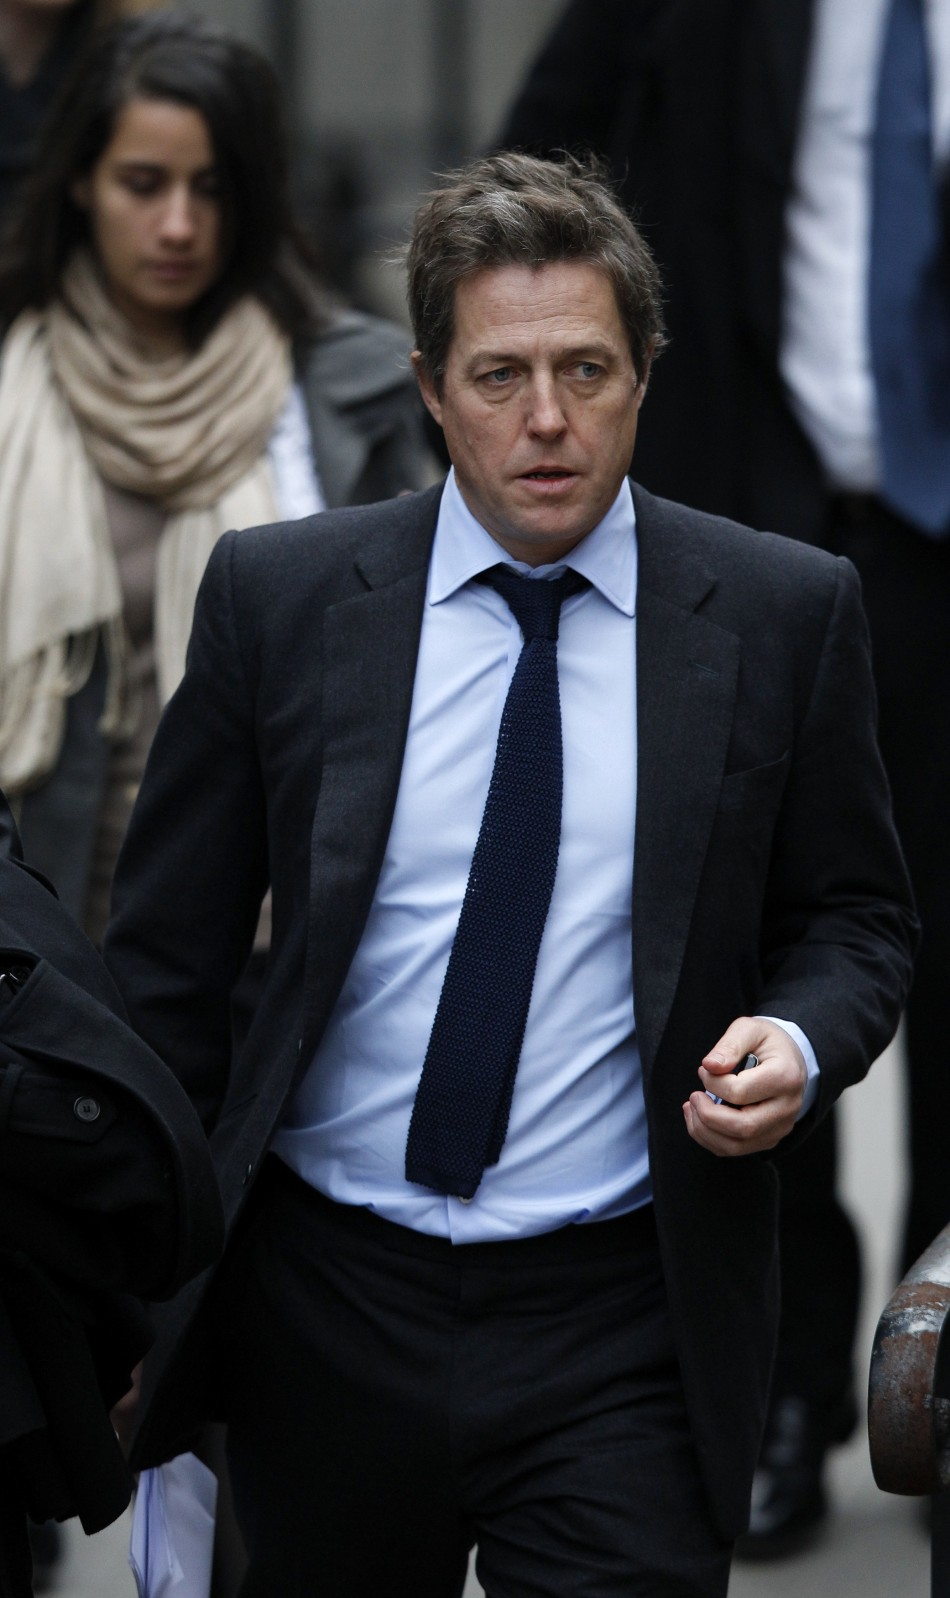 Hugh Grant at the High Court